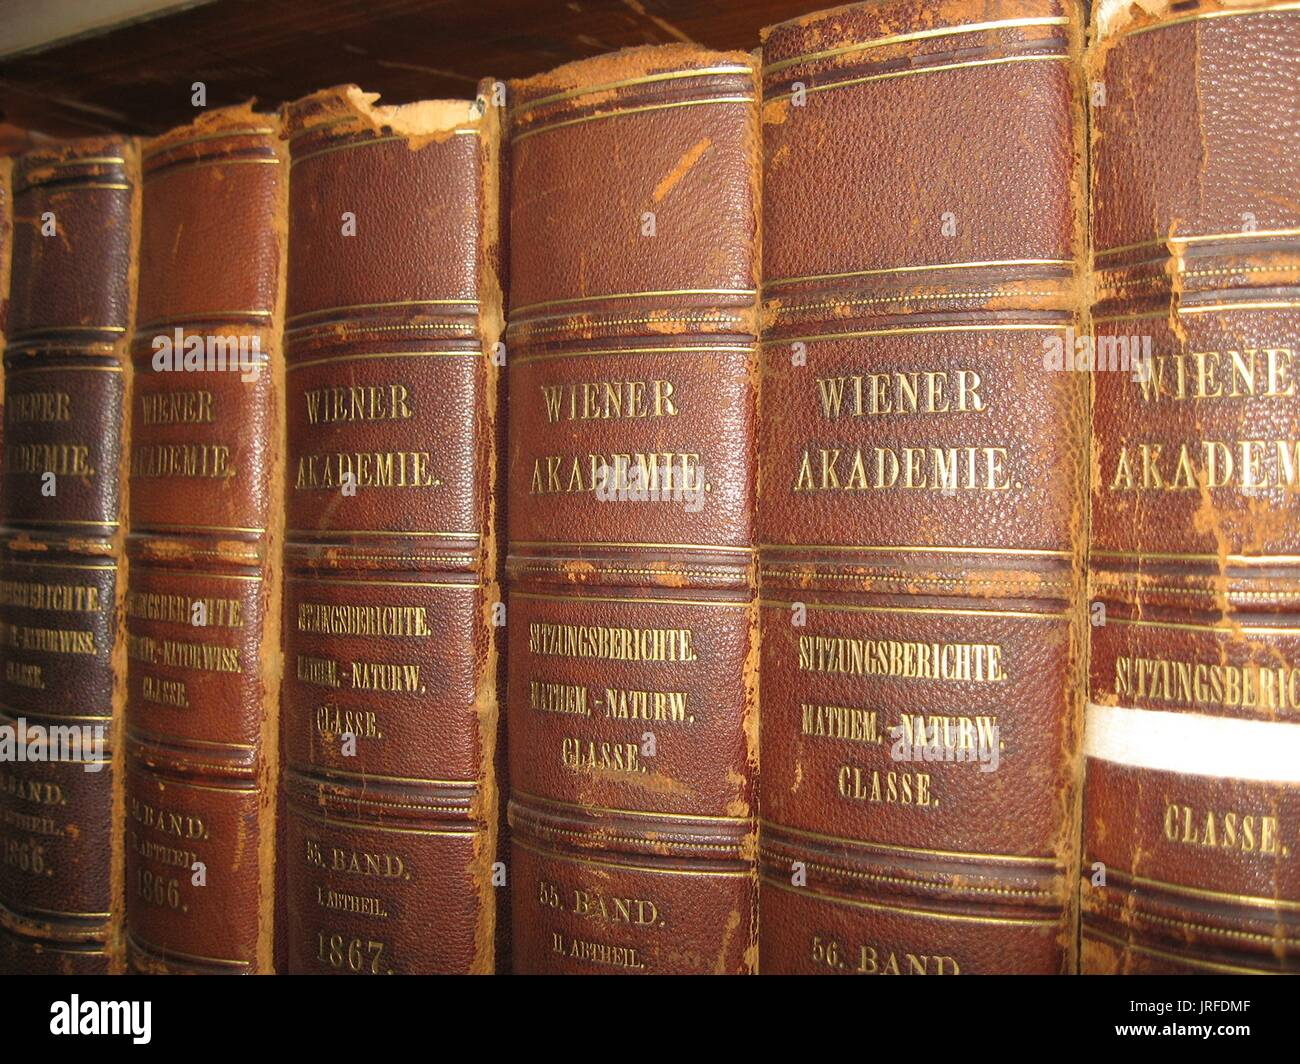 Multiple worn, leather bound books in a row on a bookshelf in a special collection library, damage to the leather spines visible, gold lettering on each book in German, 1900. - Stock Image